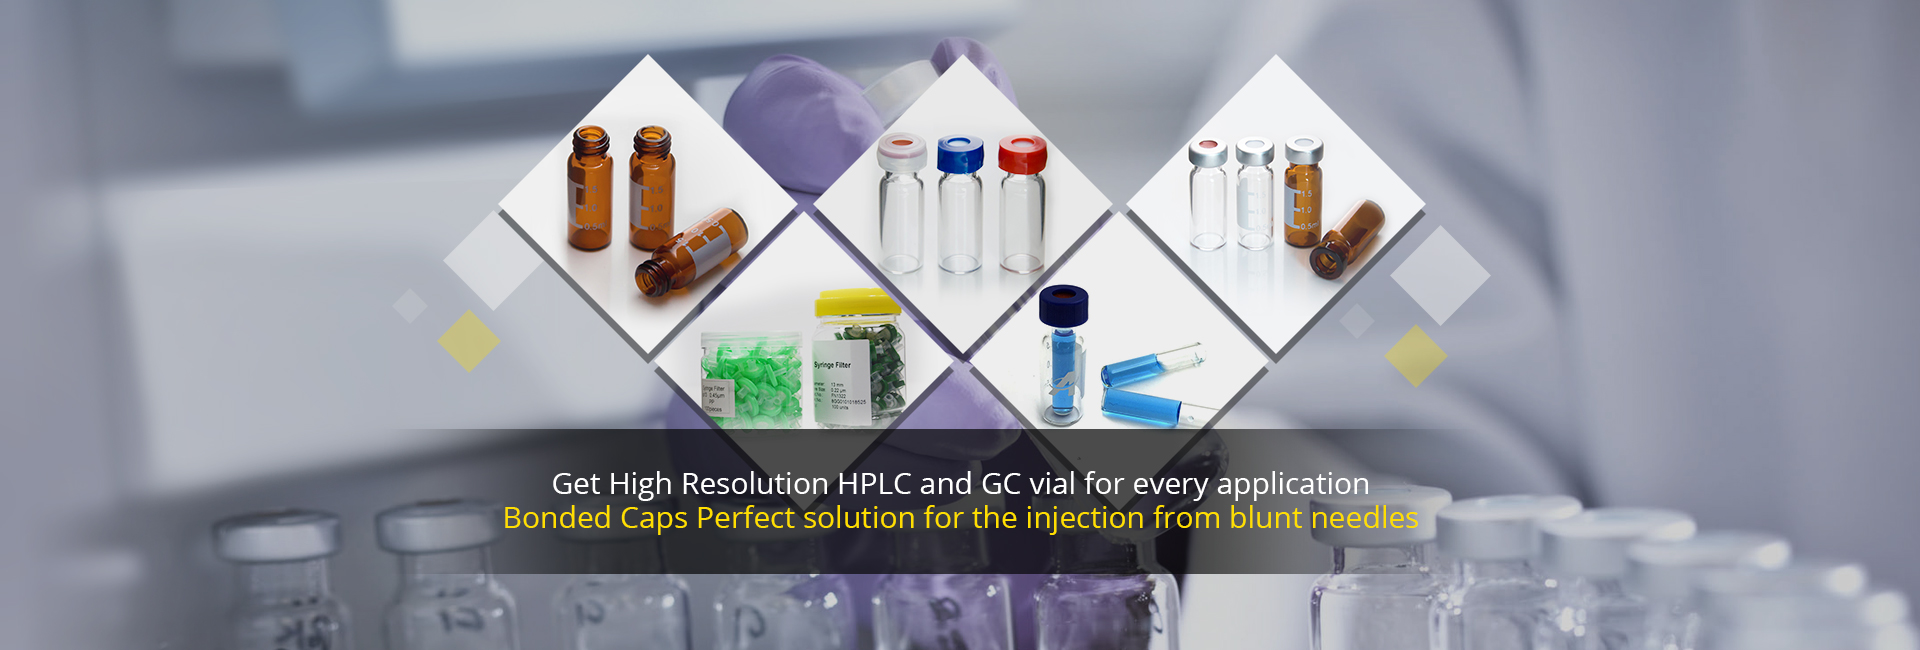 Aijiren Sampler Vials for HPLC